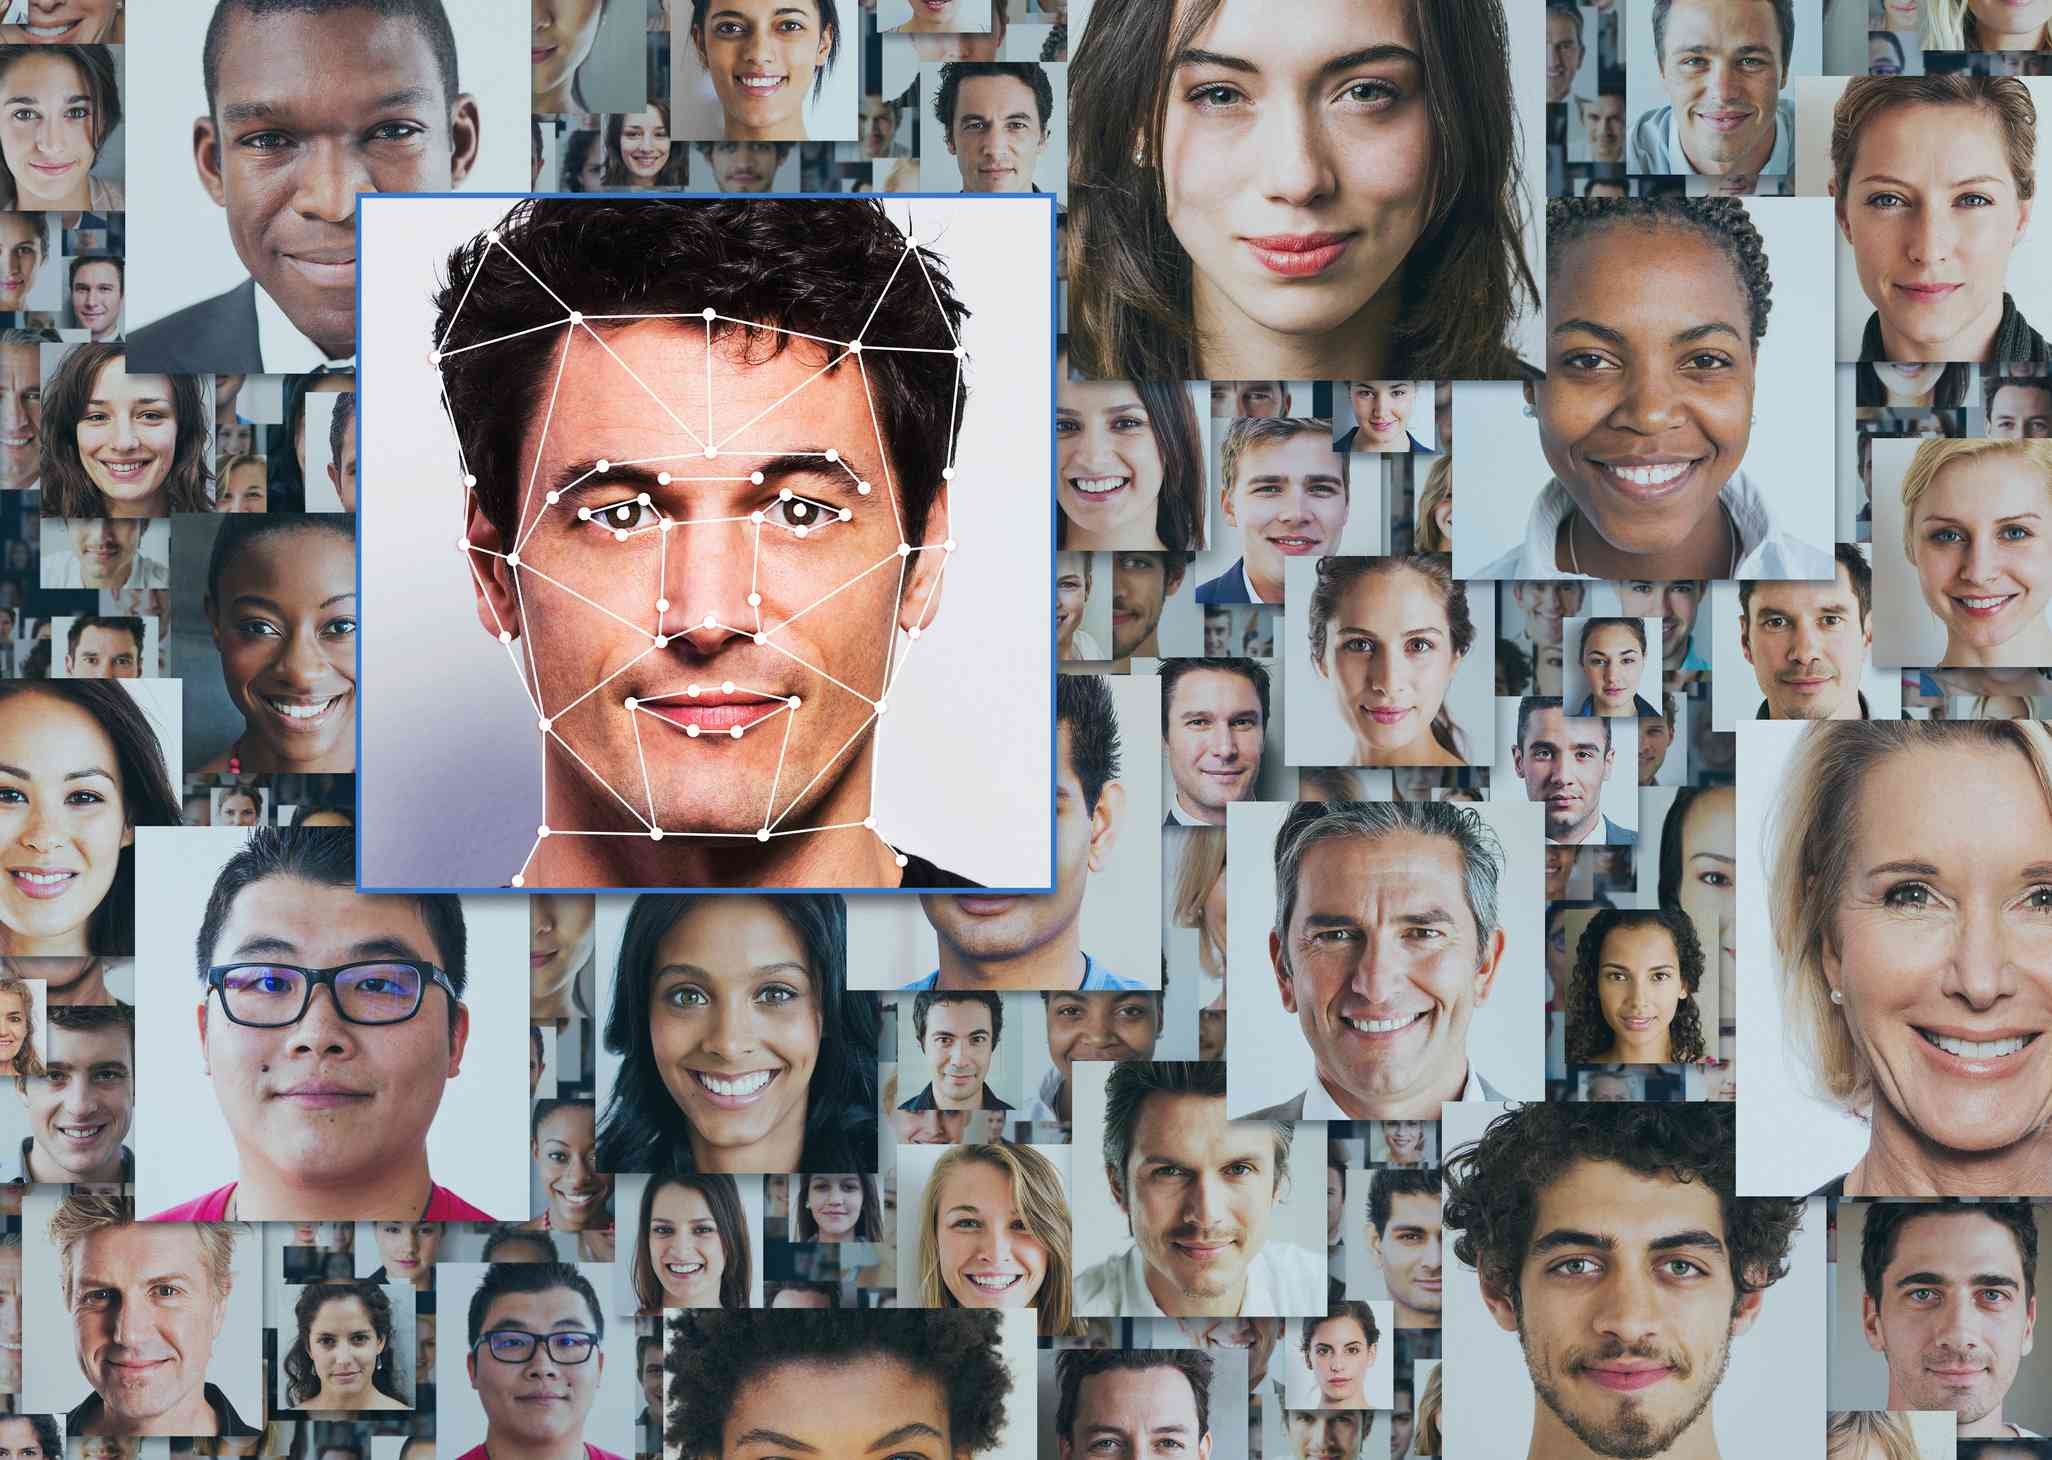 Many portraits of diverse people on in front being scanned by facial recognition technology.